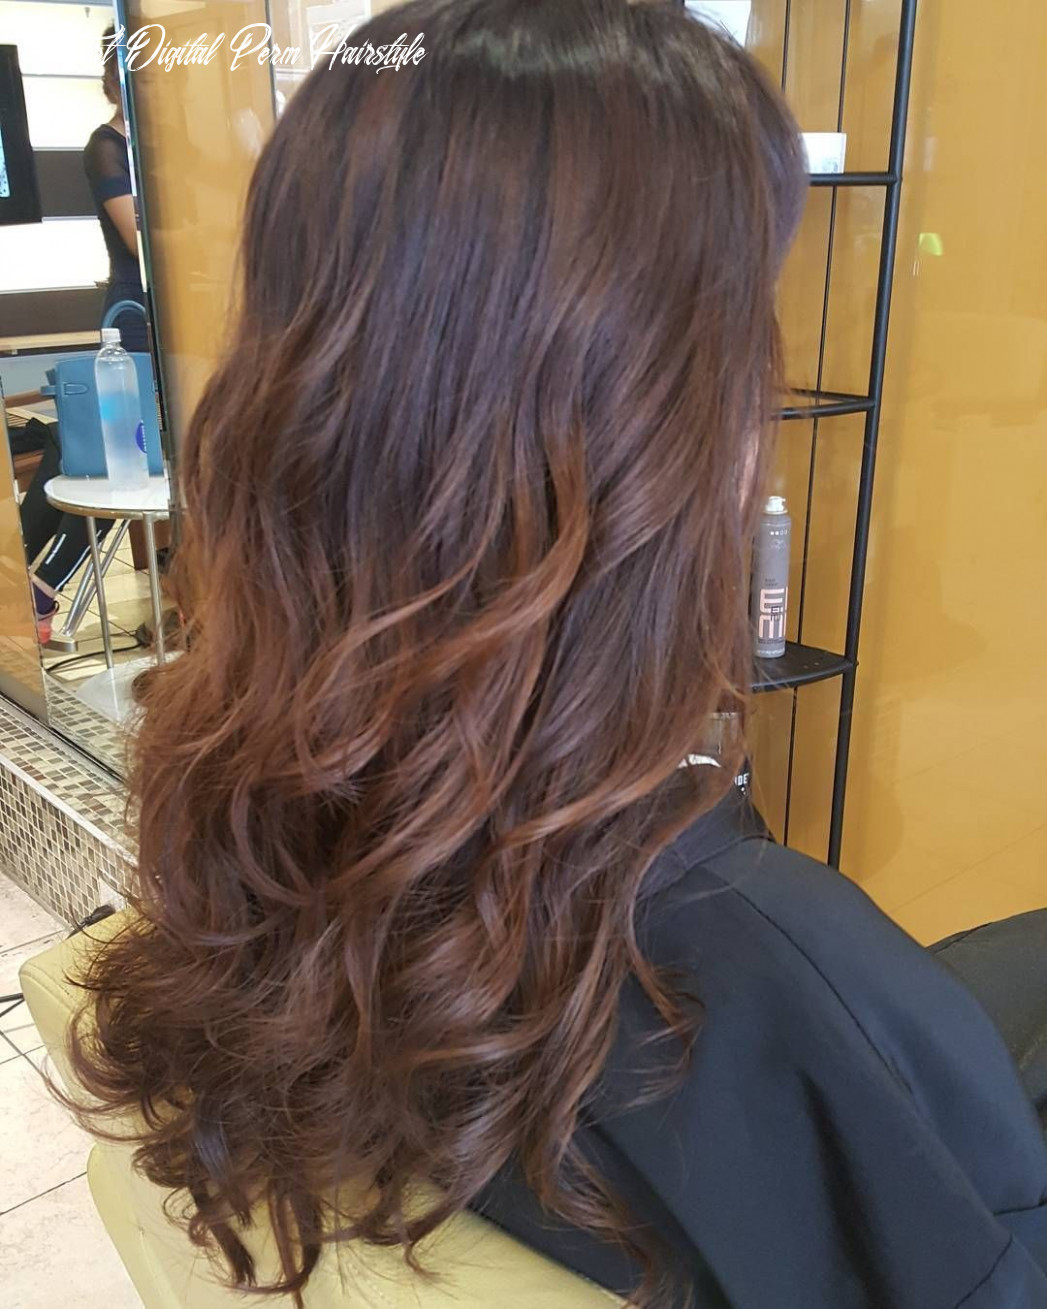 10 stunning digital perm hairstyles — perfect waves with a digi